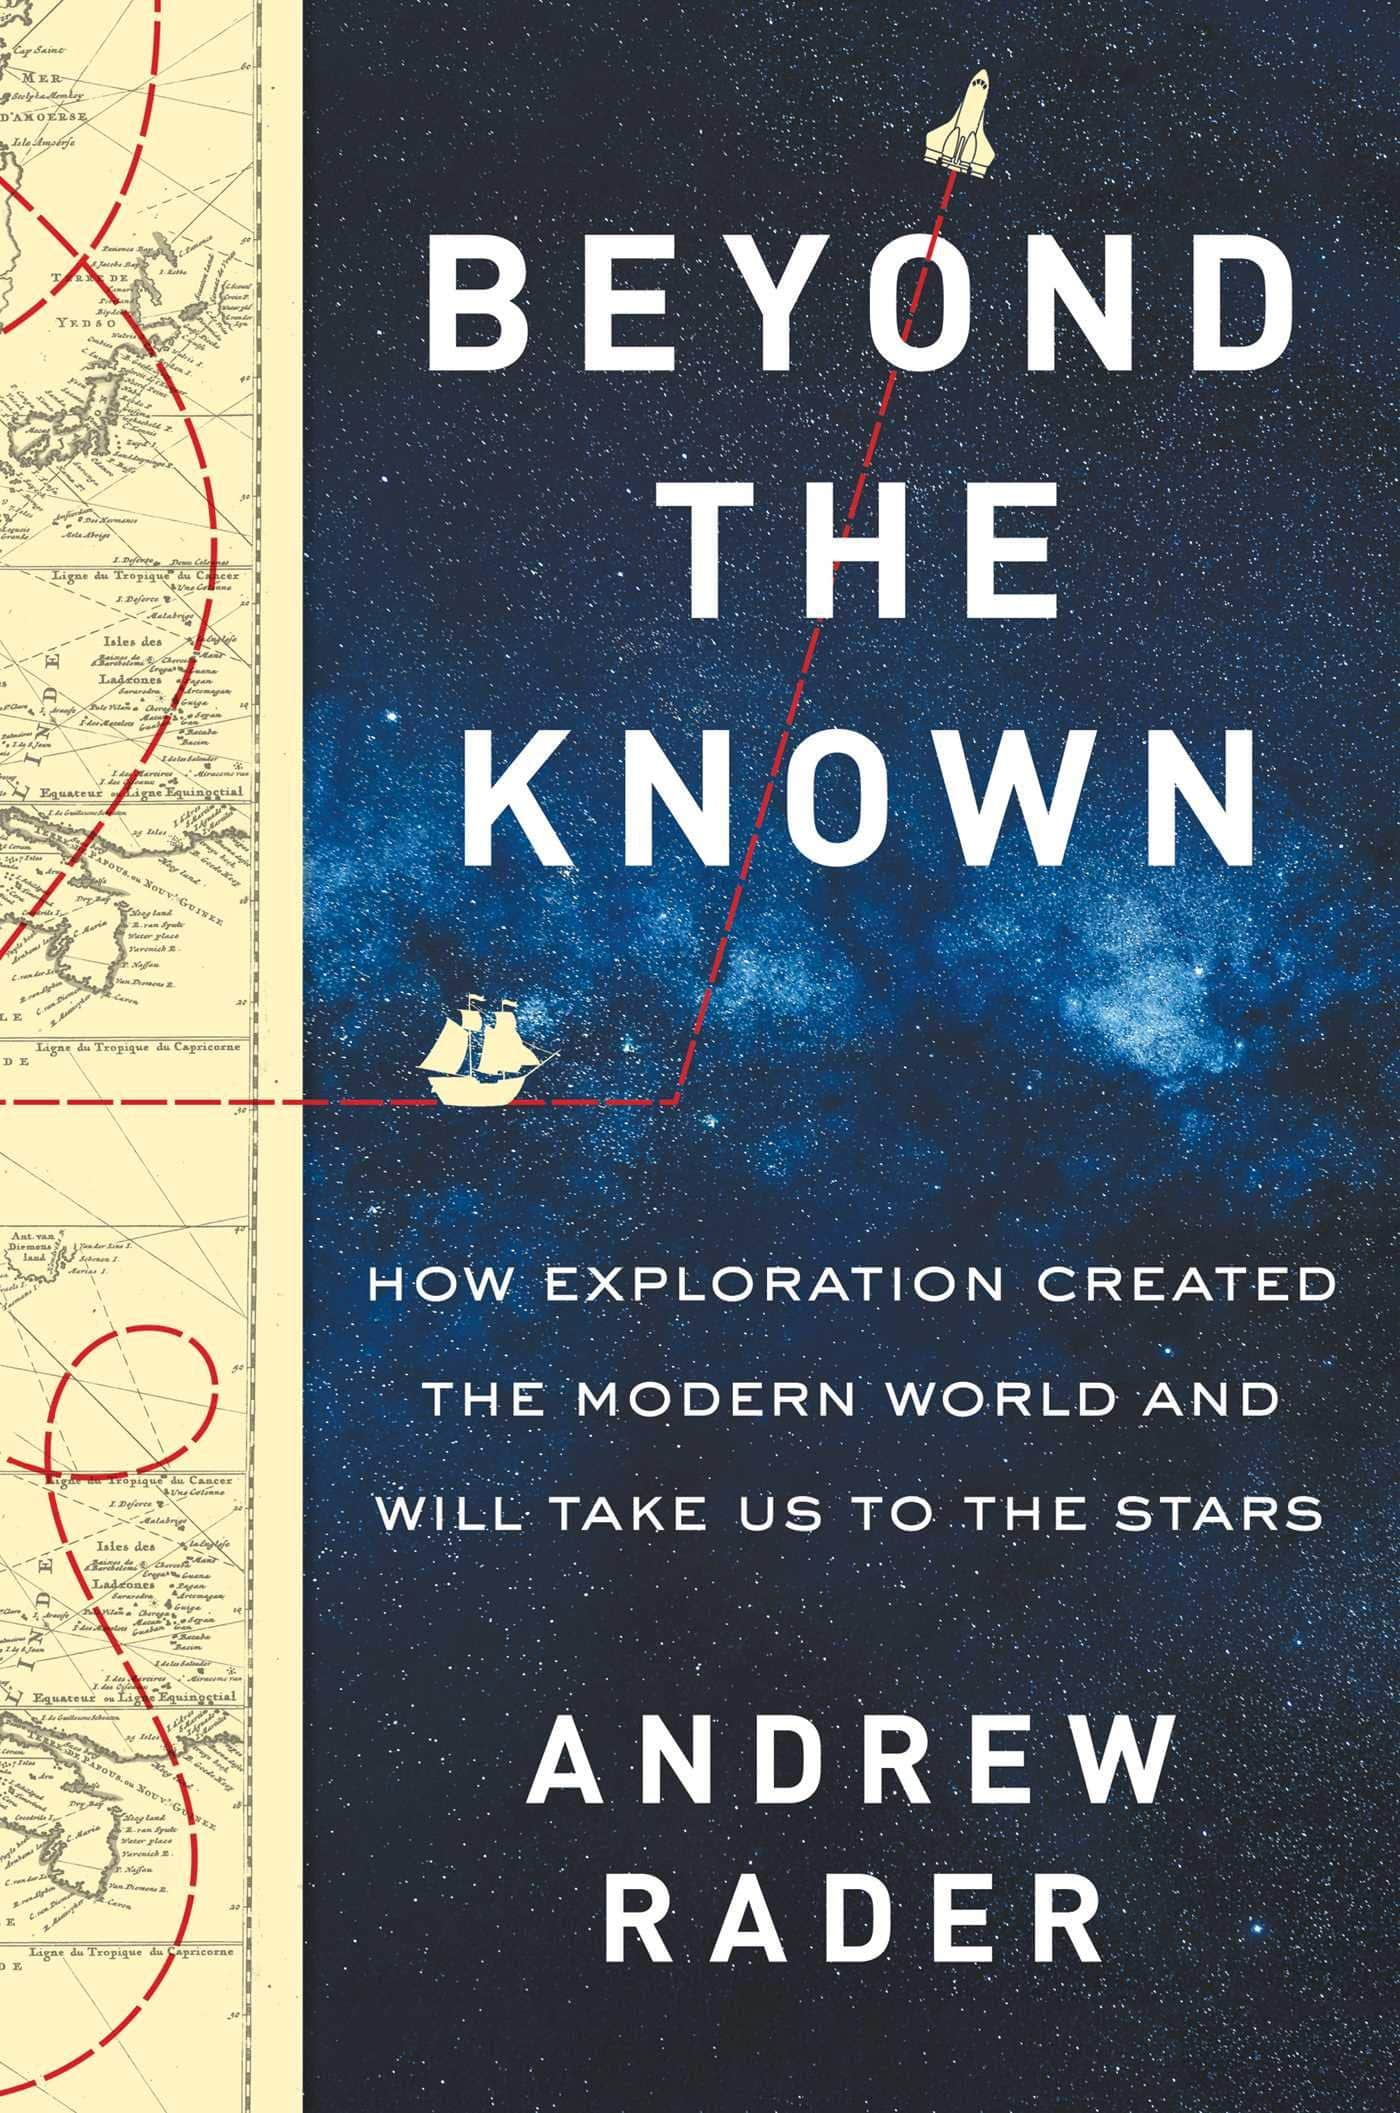 Beyond the known andrew rader